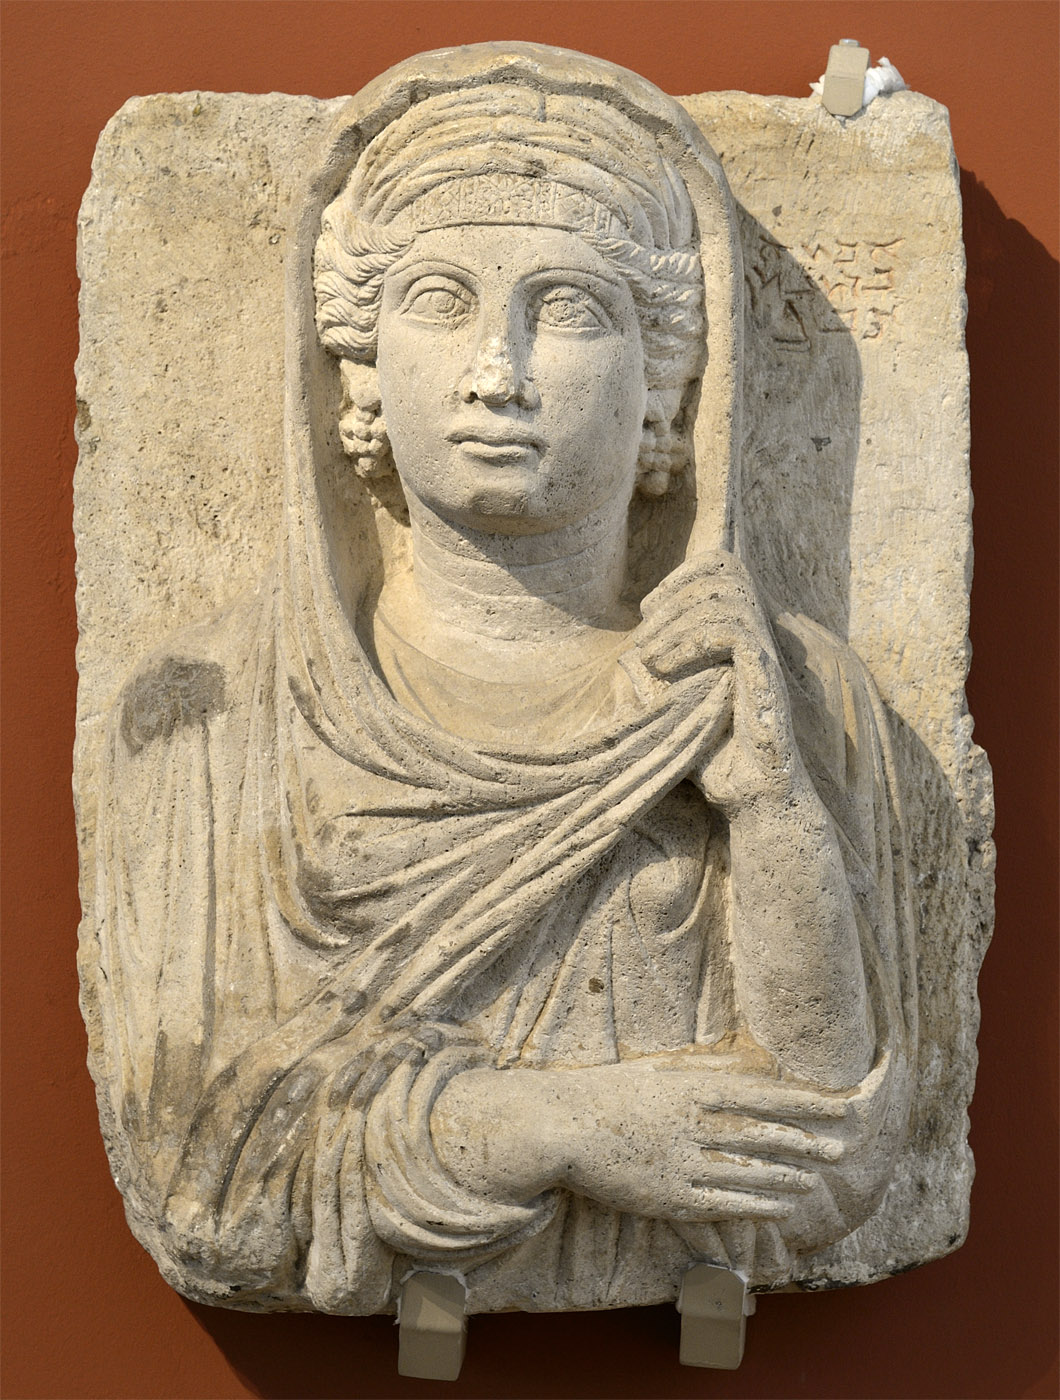 Grave stele of Abkha, the daughter od Akhou from Palmyra. Syria, Palmyra, ca. mid-2nd cent. CE. Sandstone. Inv. No. 1a 647. Moscow, the Pushkin Museum of Fine Arts